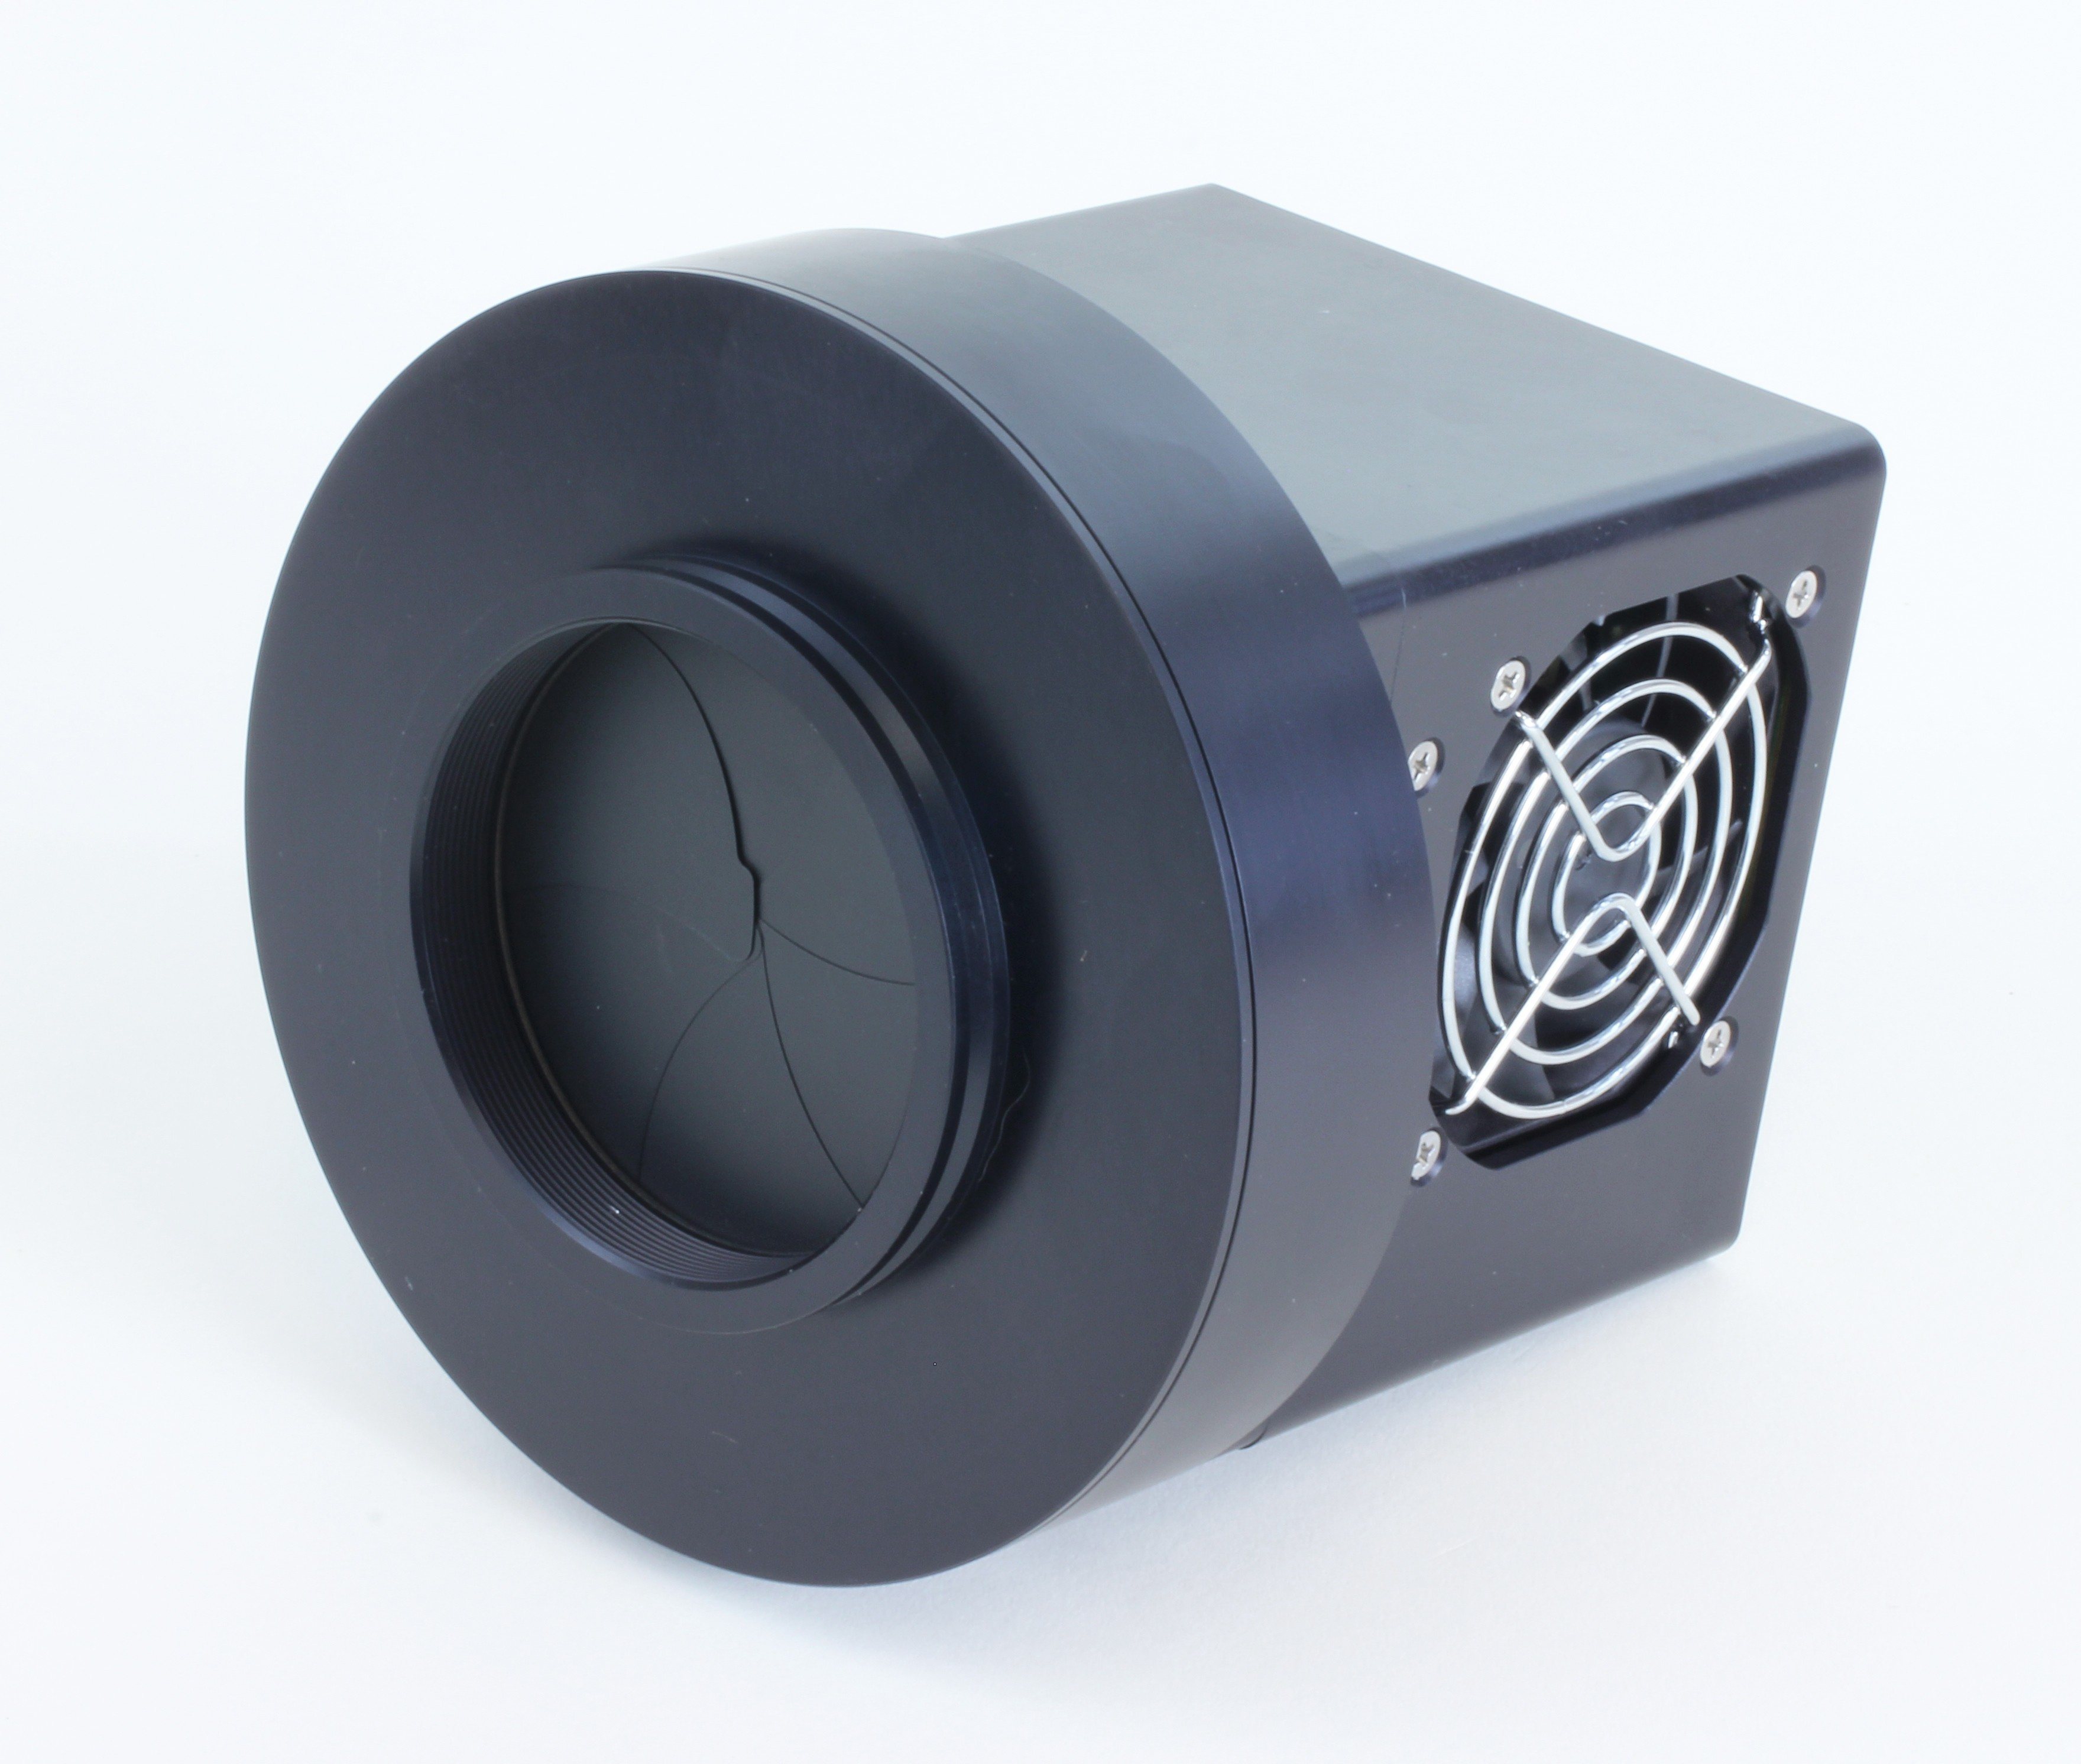 FLI Microline CCD Camera KAI-11002, Interline Transfer